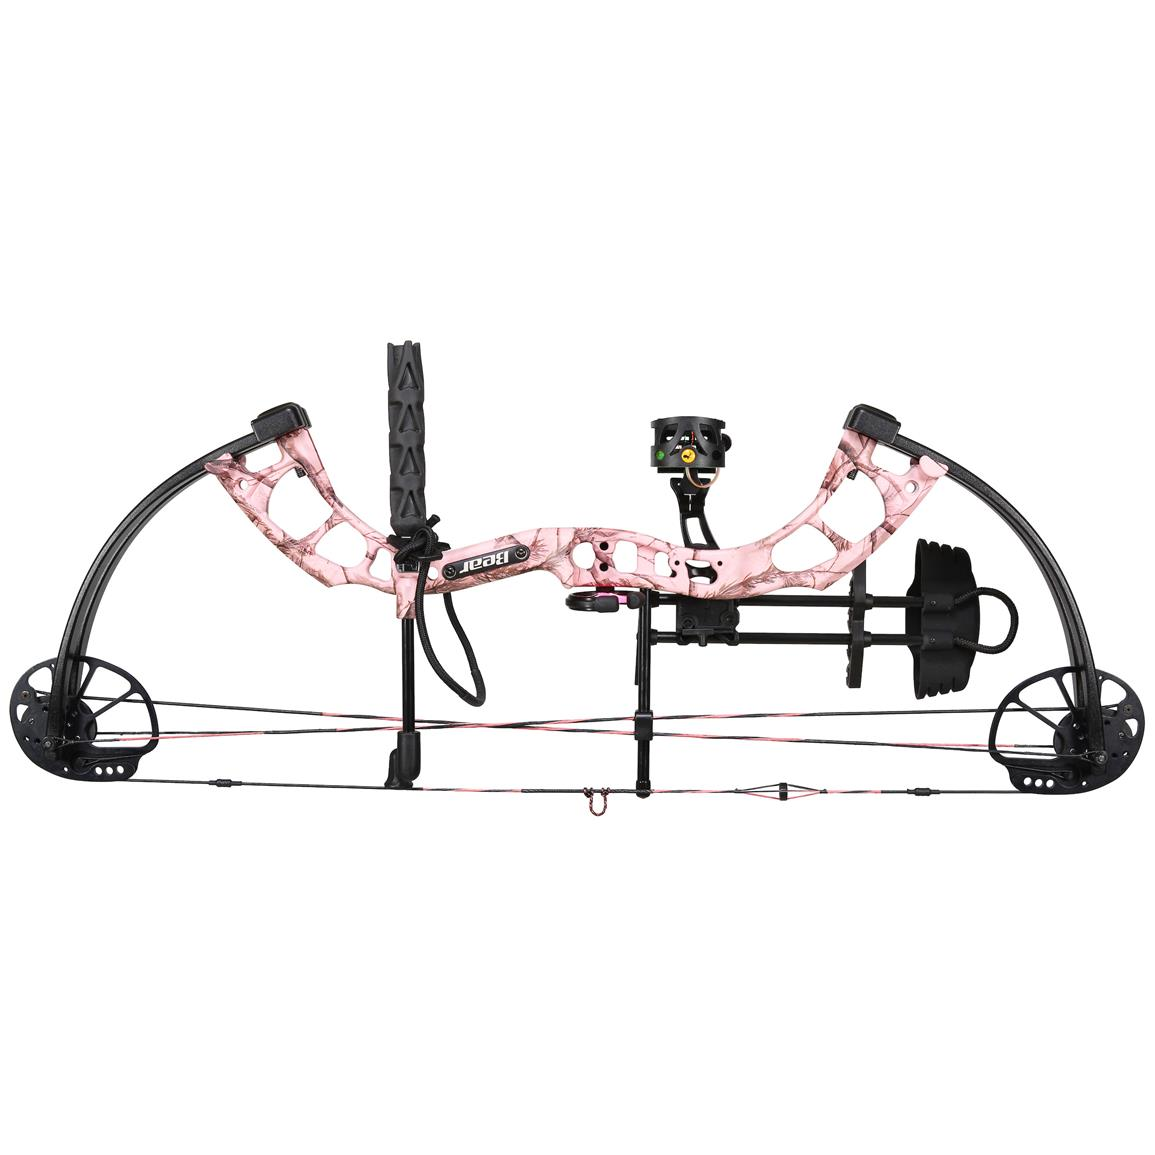 Bear Archery Cruzer Ready to Hunt Compound Bow, Realtree AP Pink